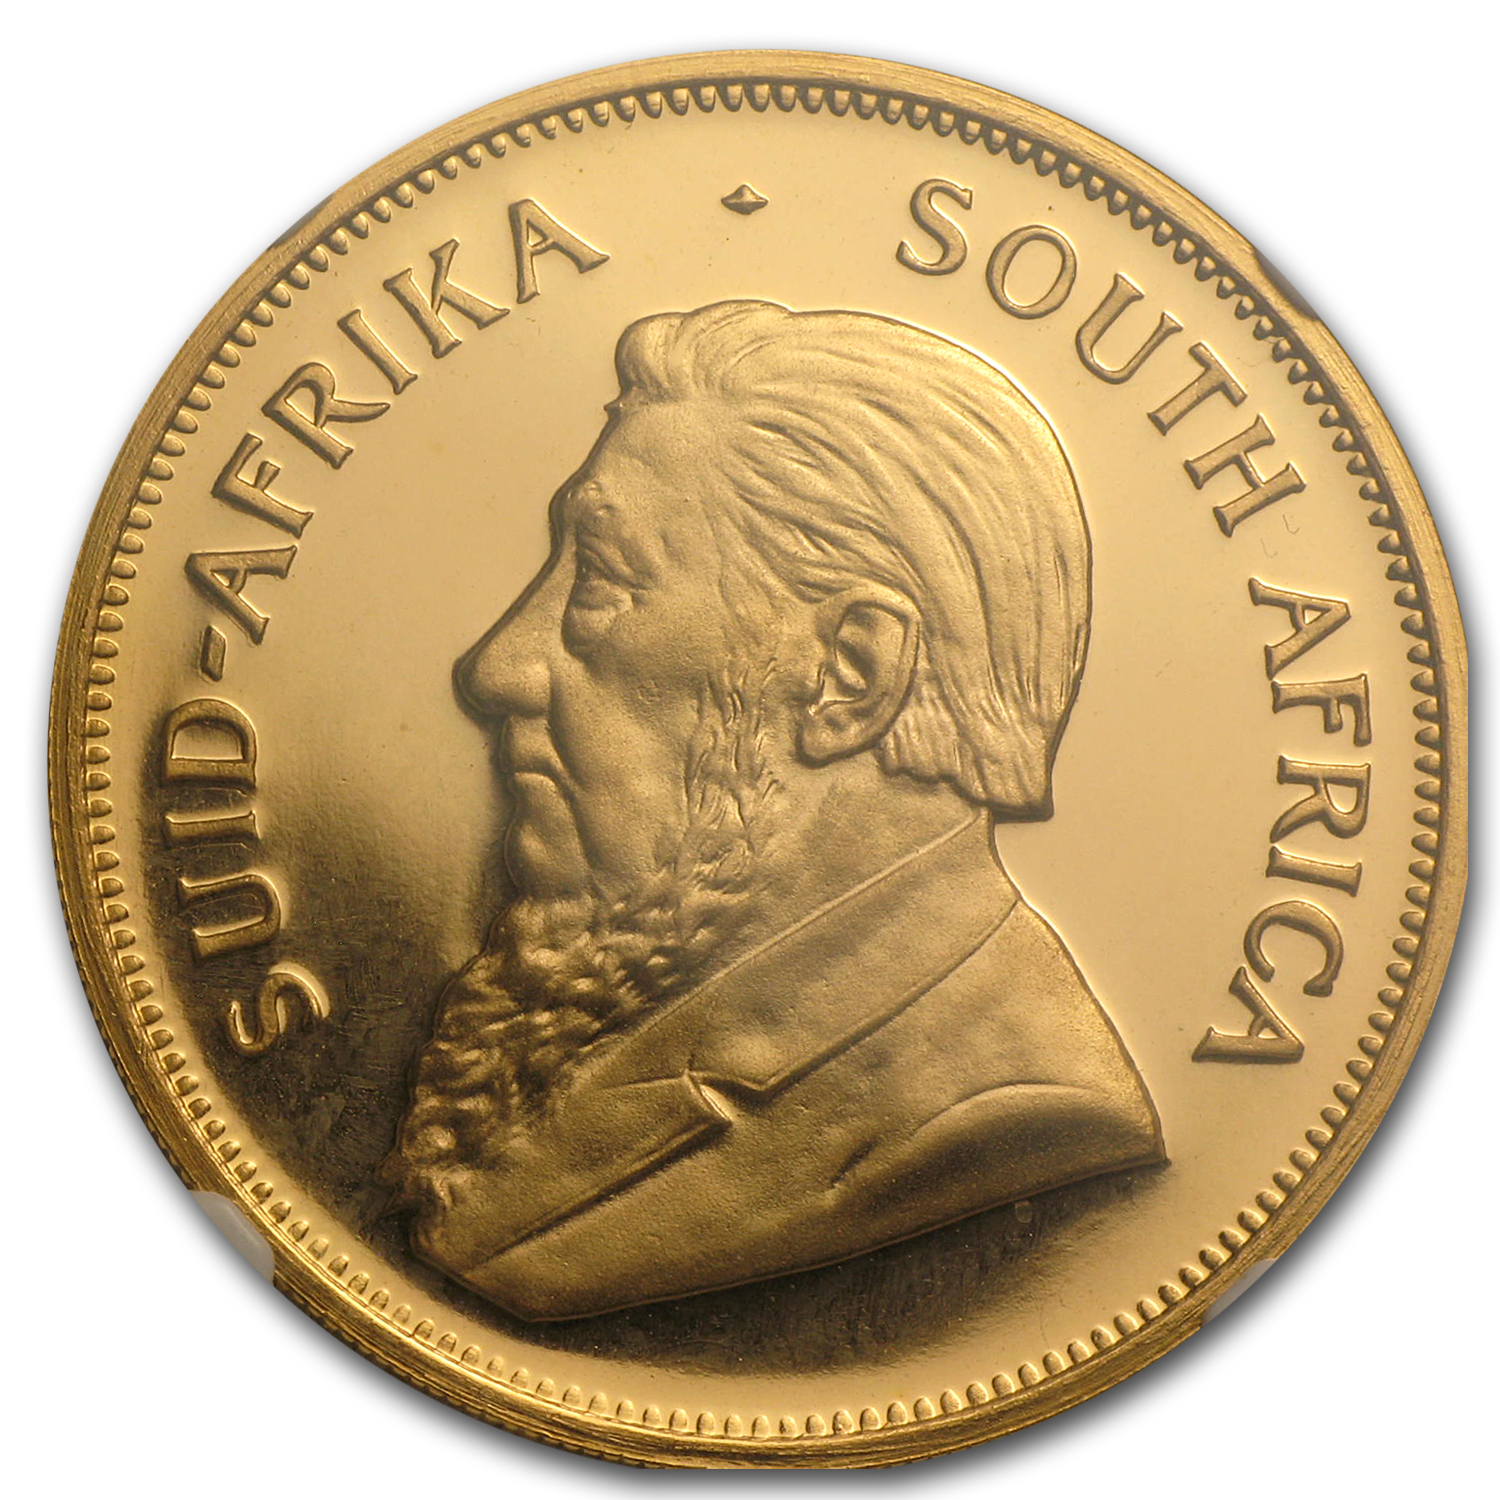 1981 South Africa 1 oz Gold Krugerrand PF-67 NGC